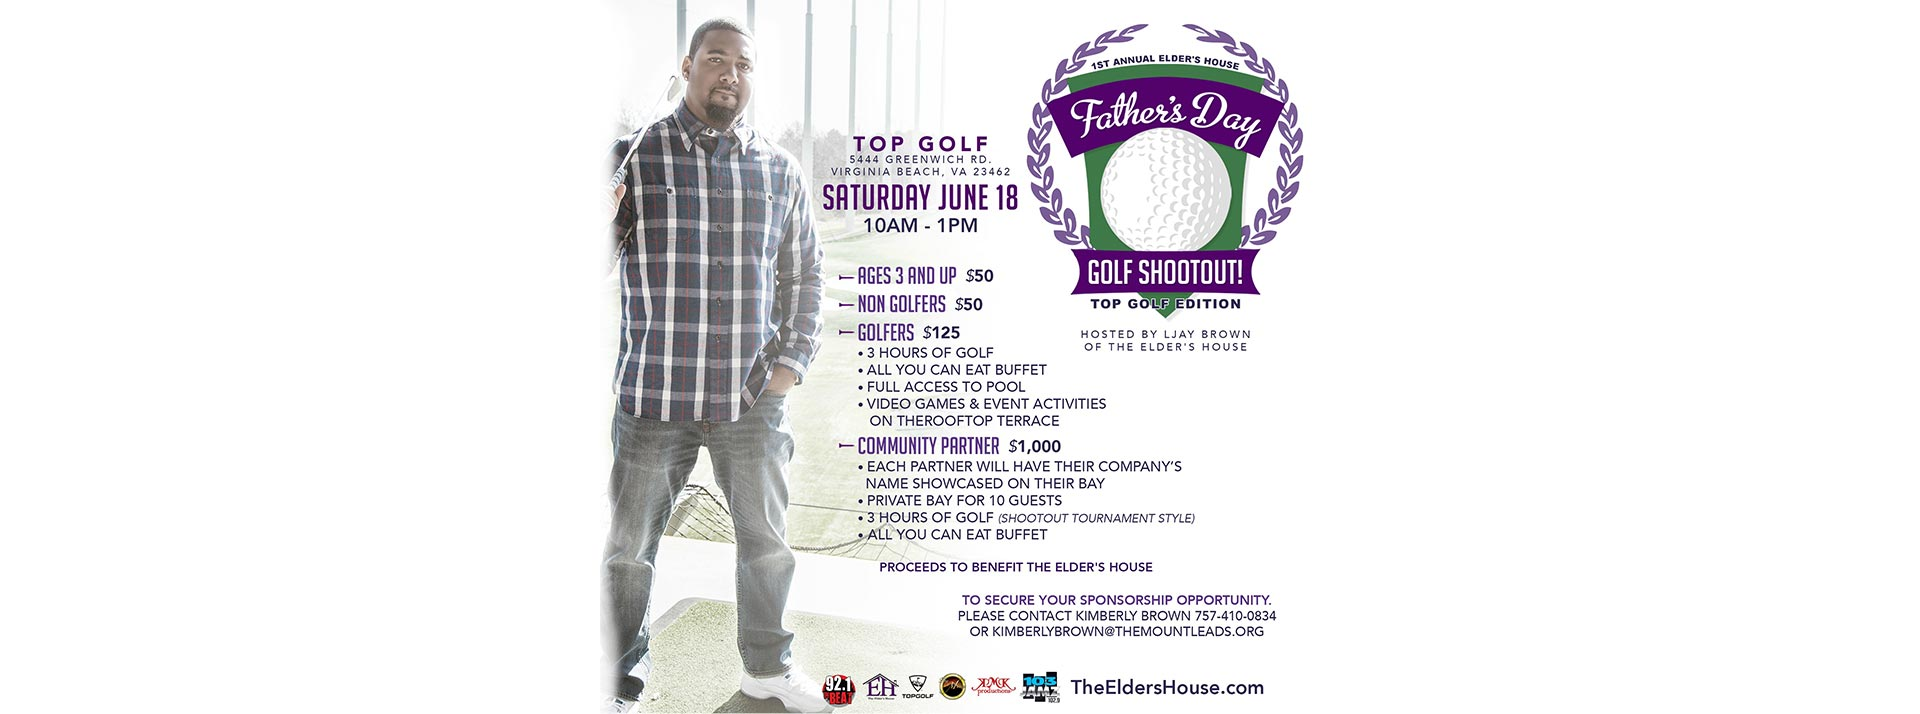 Father's Day Golf Shootout